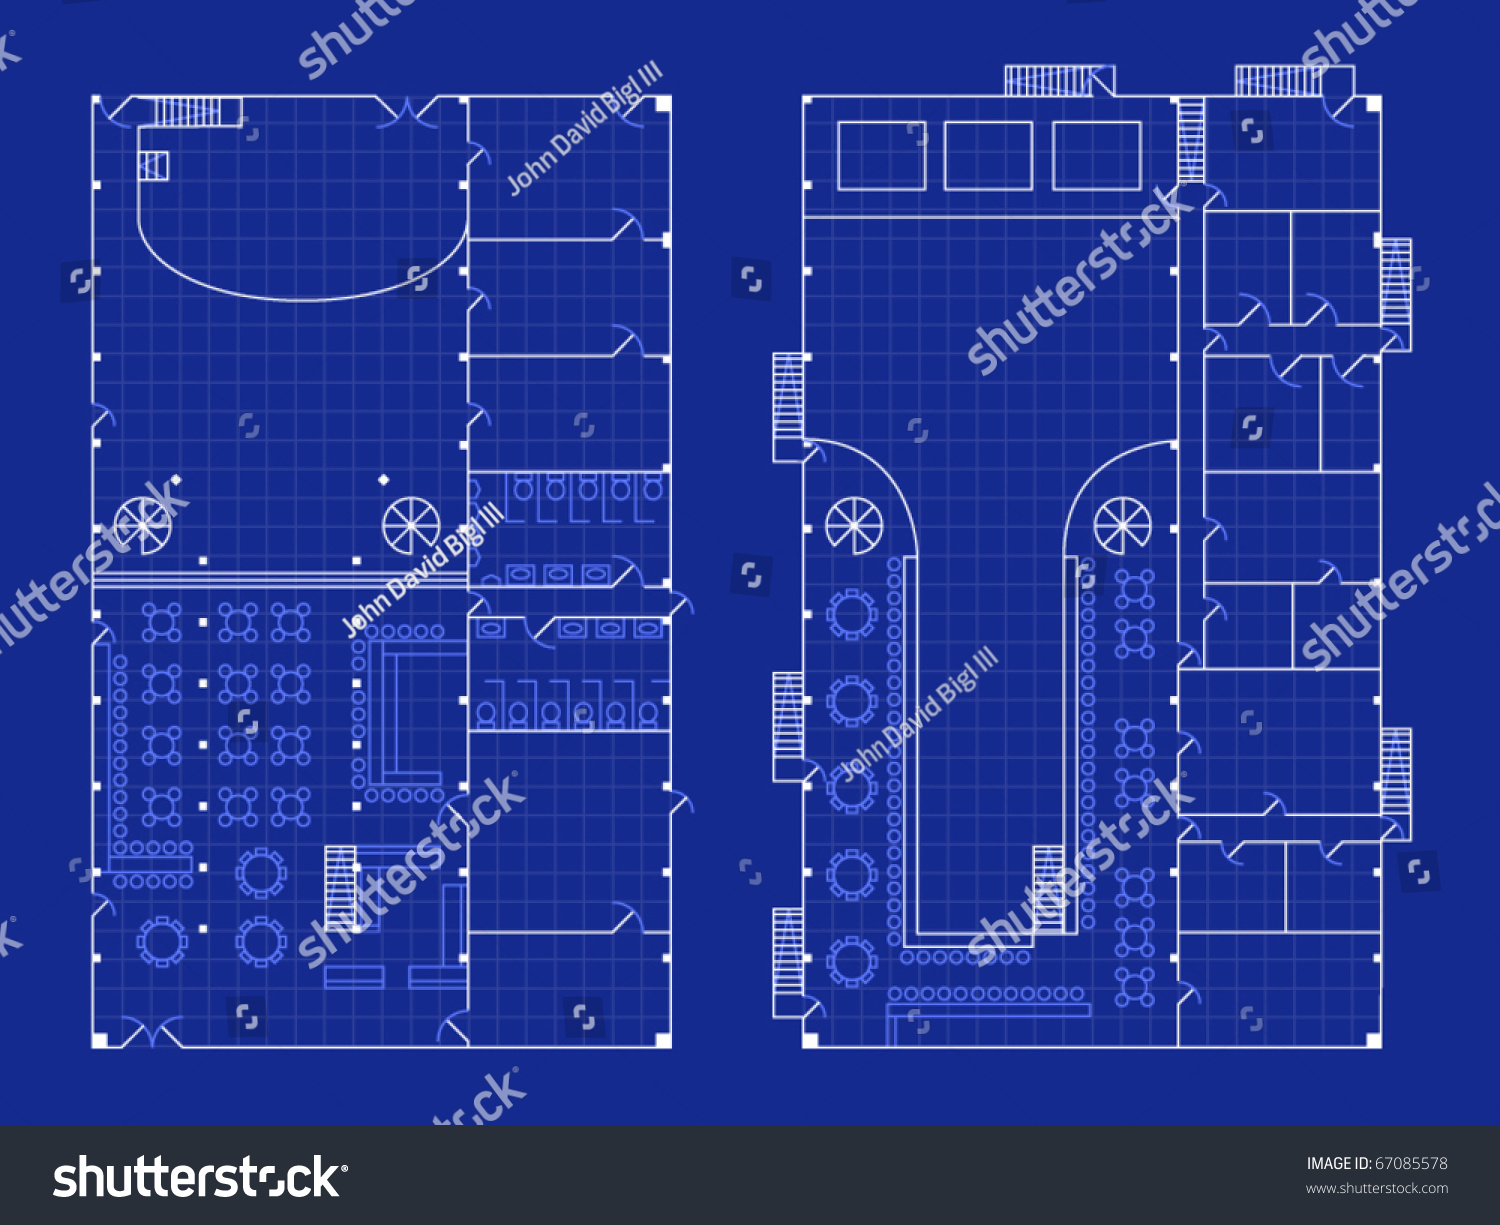 Floorplan For A Nightclub With Stage And Bar In Blueprint